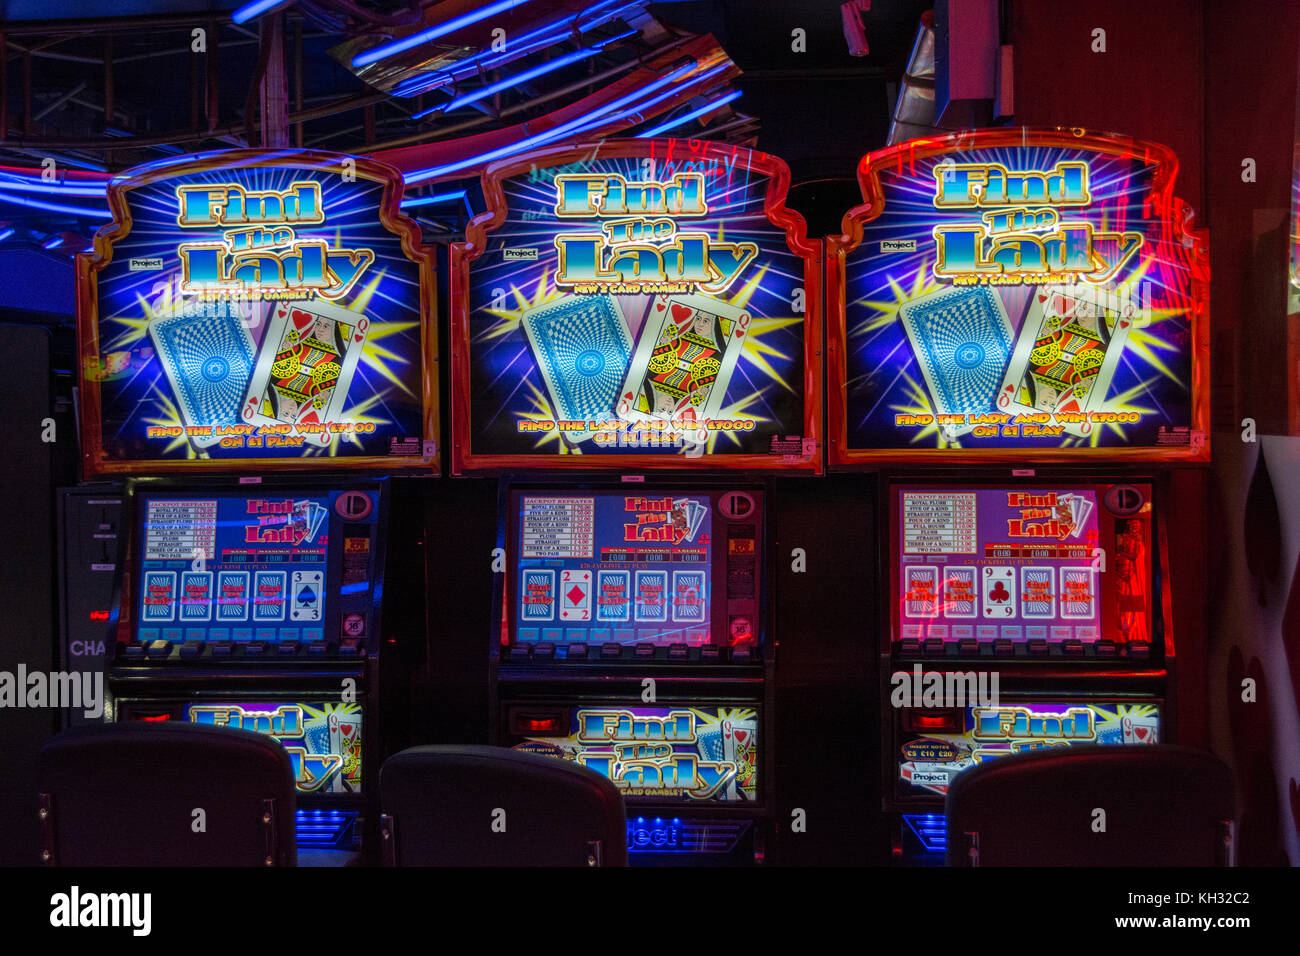 An amusement arcade in Chinatown in London's West End, UK Stock Photo